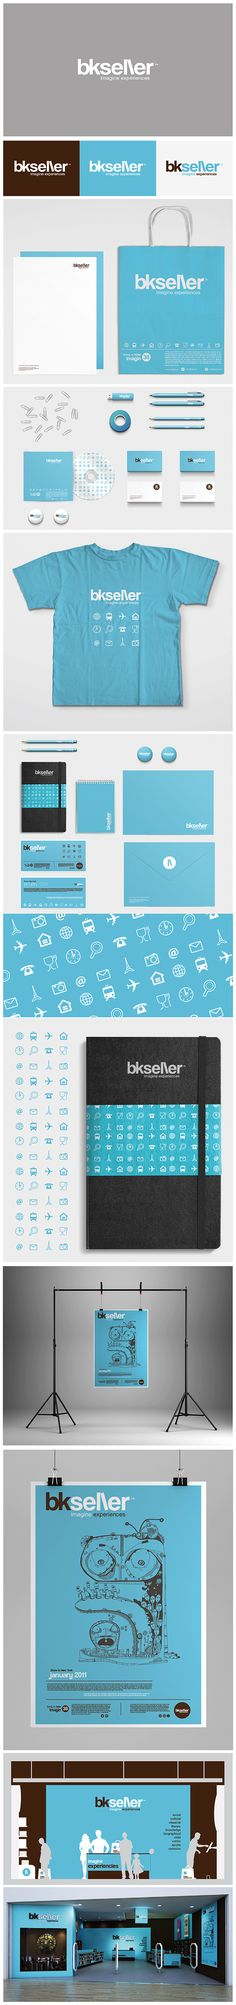 Simple Branding___bkseller by Mister Onüff by misteronüff , via Behance #identity #packaging #branding PD